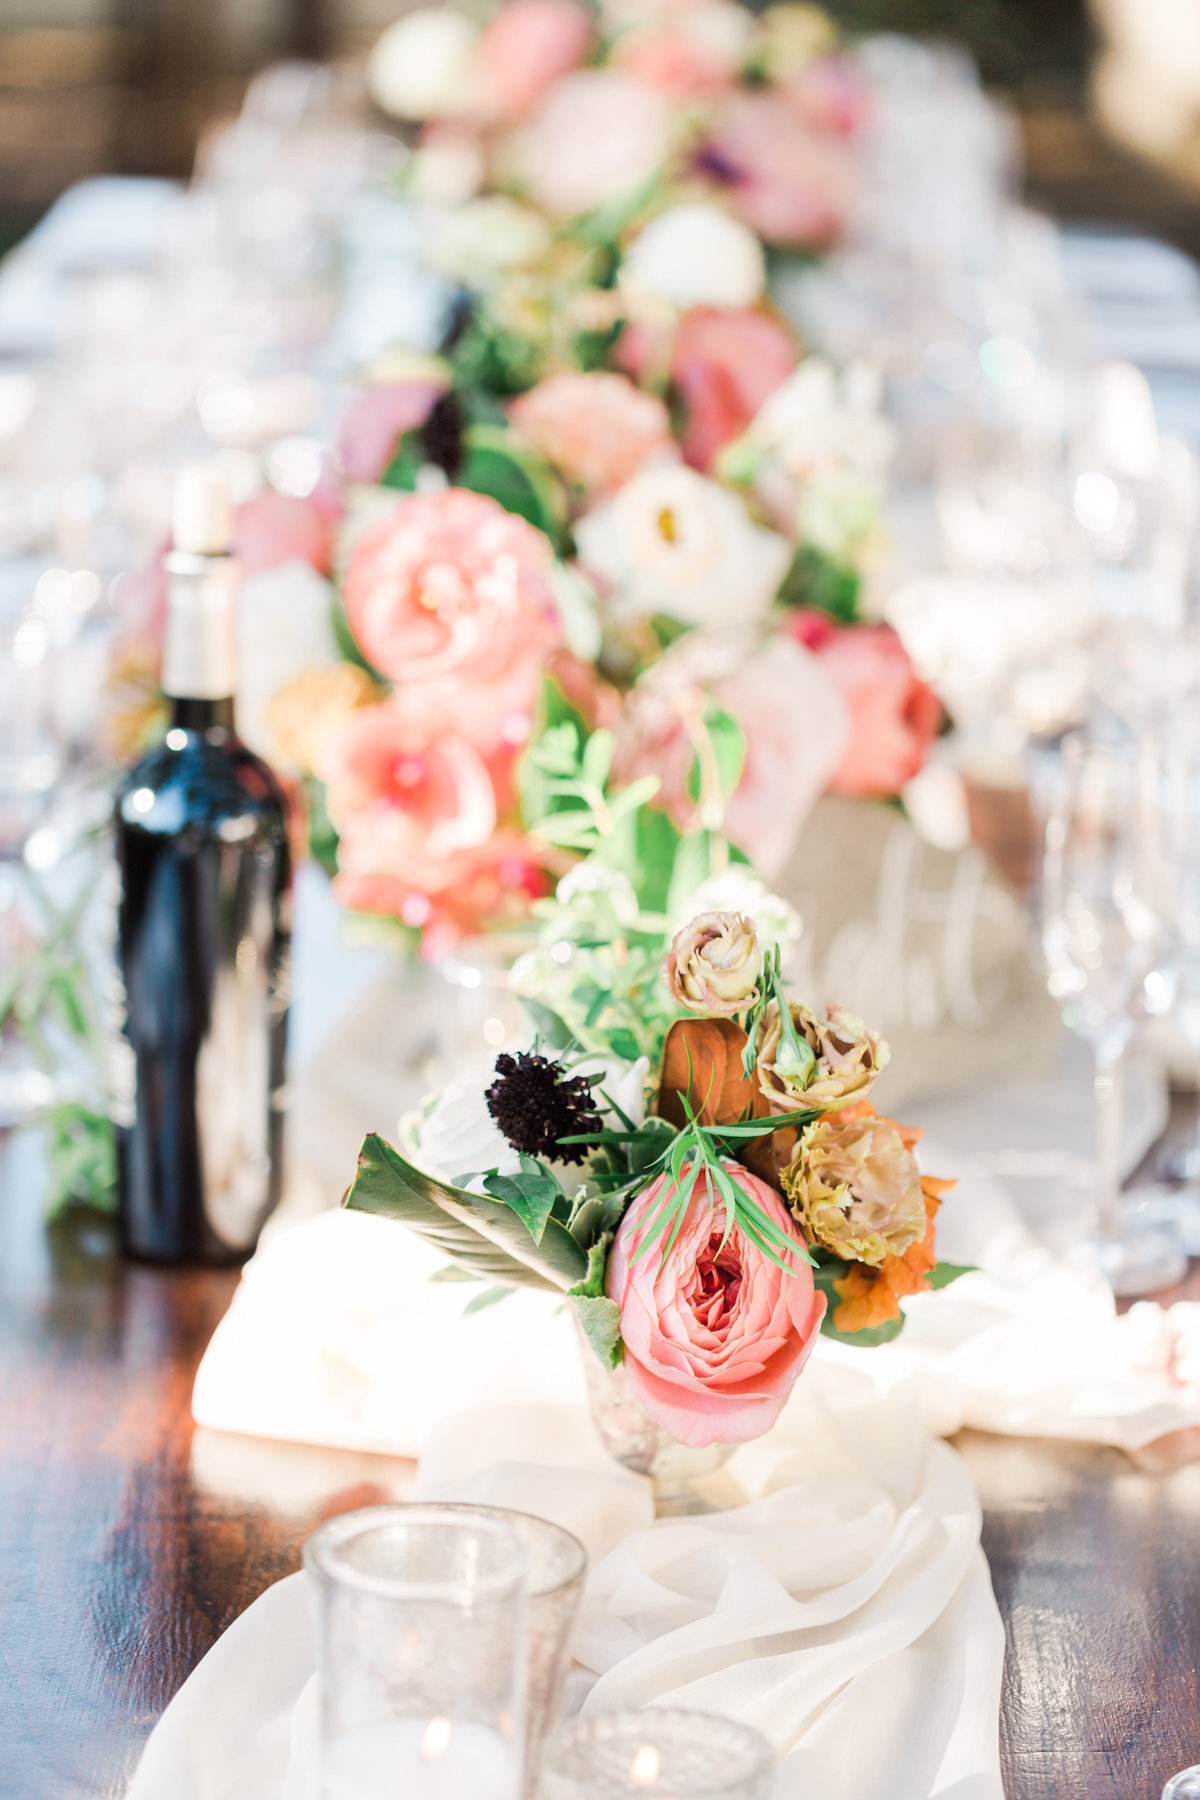 Quail_Ranch_Blush_California_Wedding_Valorie_Darling_Photography - 118 of 151